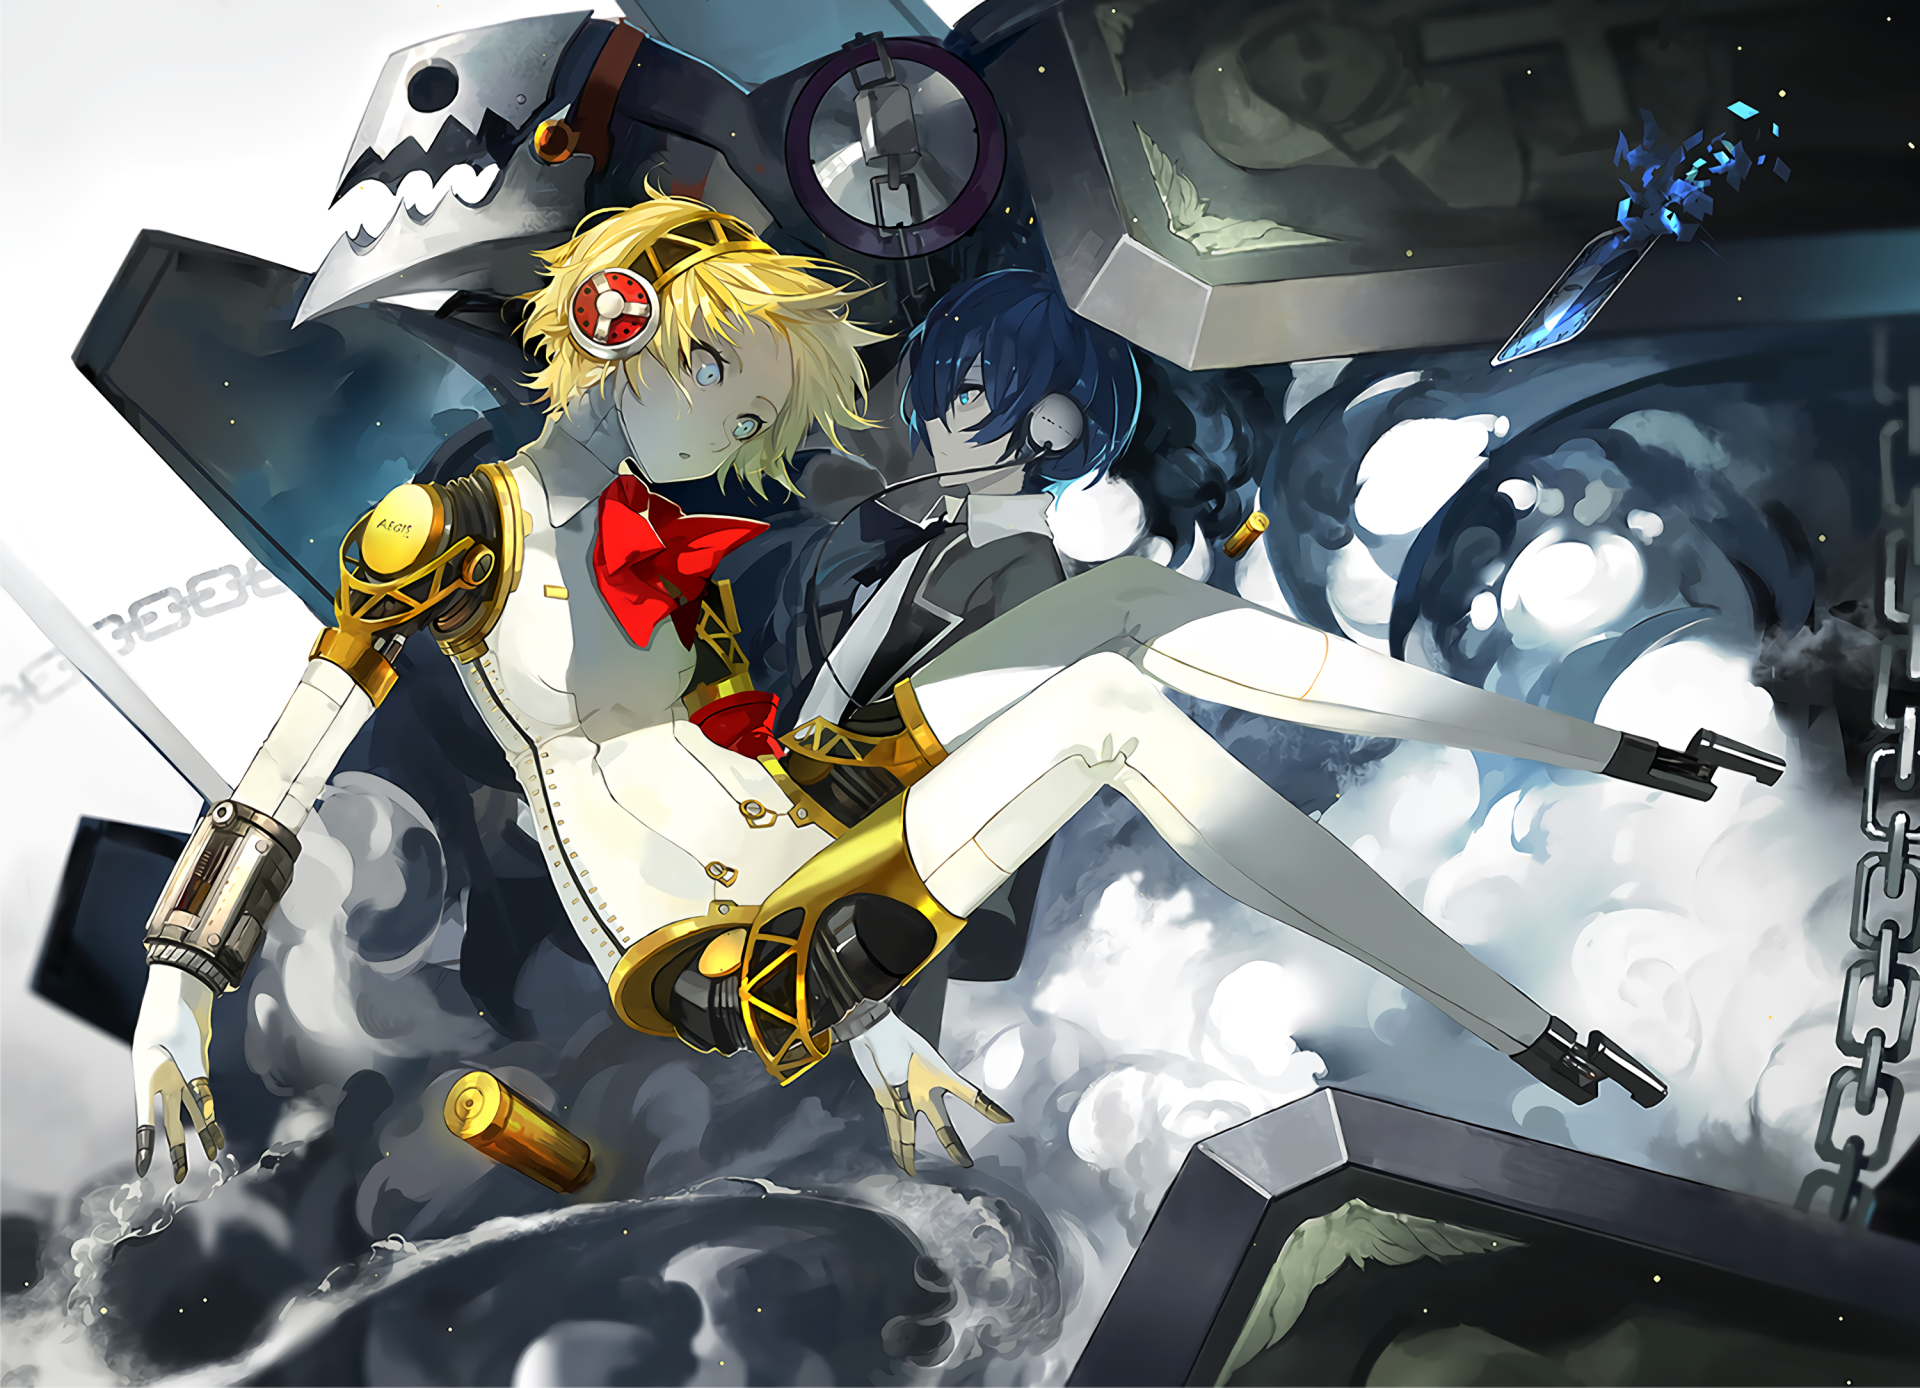 Video Game - Persona 3  Aigis (Persona) Thanatos (Persona) Wallpaper